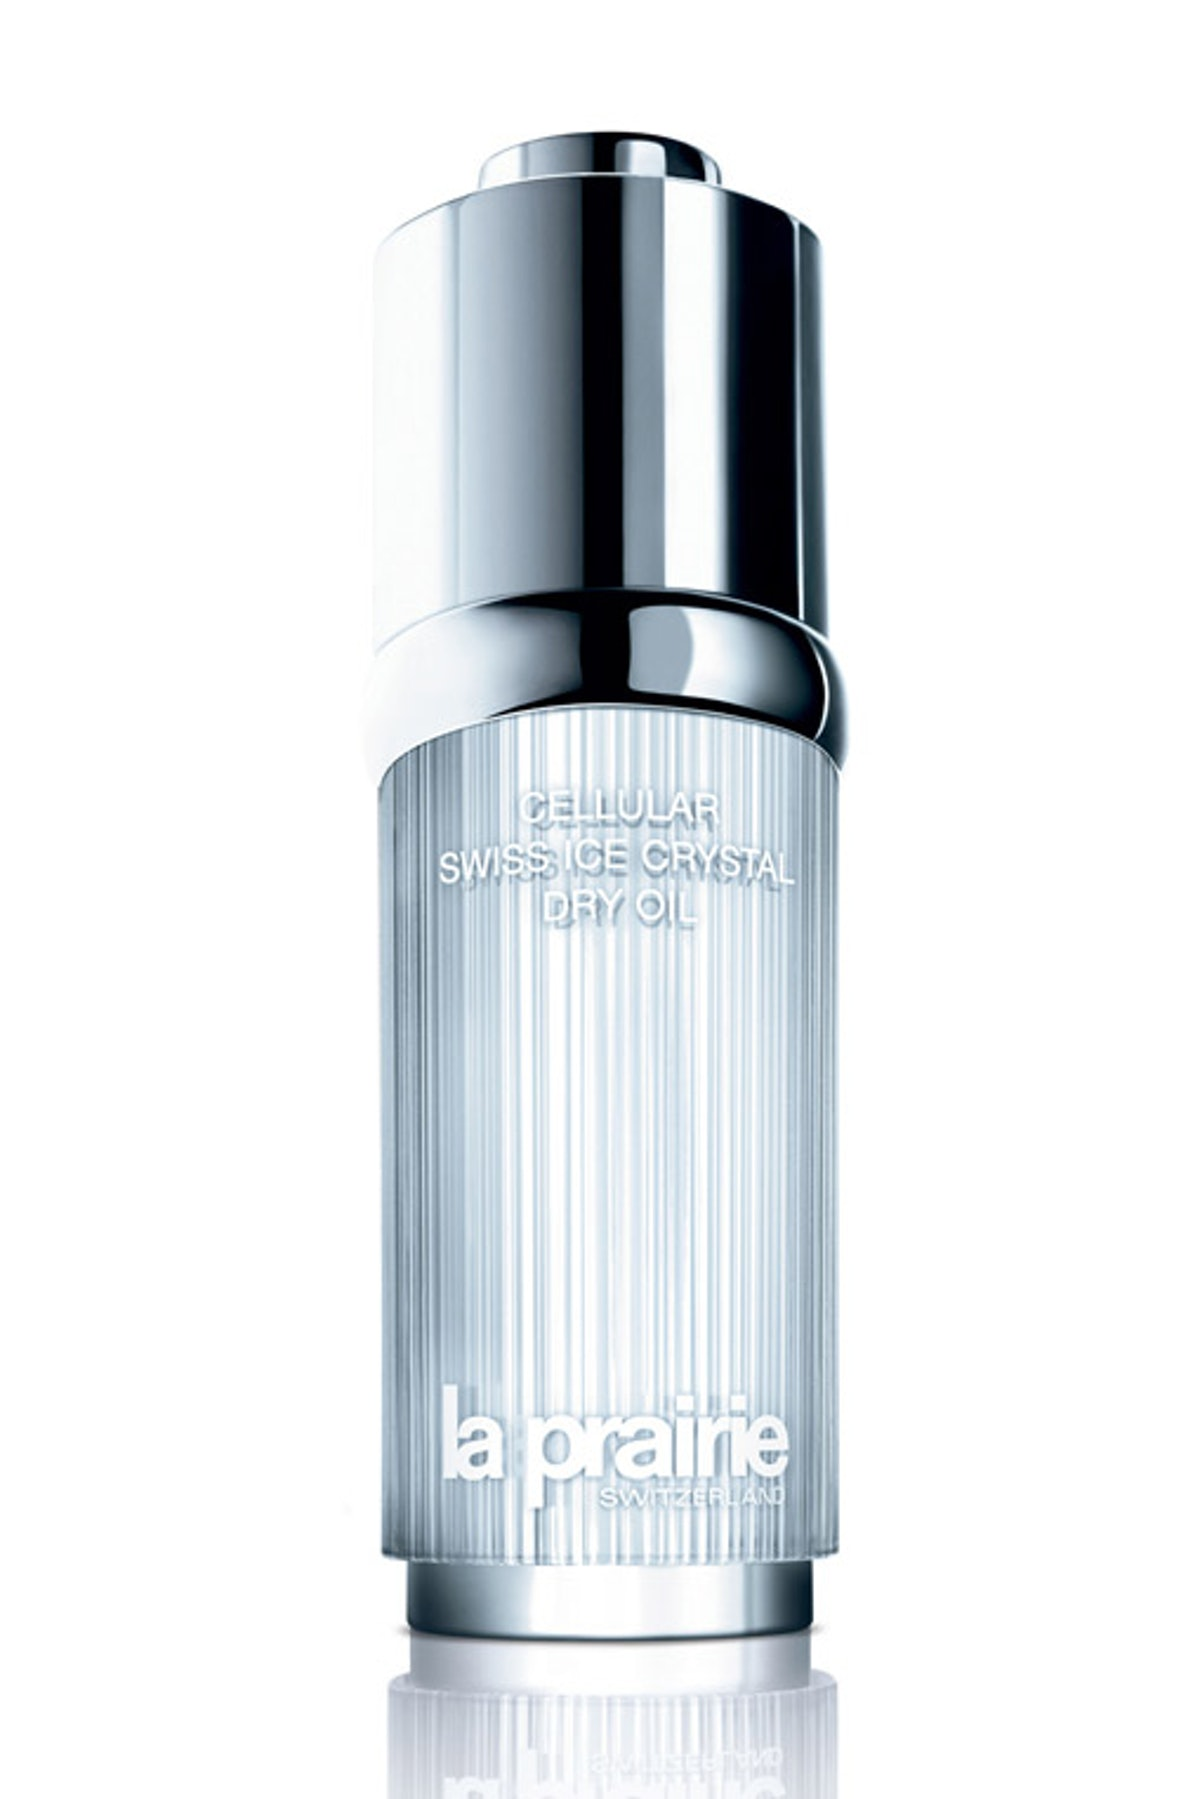 __La Prairie Cellular Swiss Ice Crystal Dry Oil__ ($300, [laprairie .com](http://www.laprairie.com/default/home)): The Alpine flowers and algae in this light oil protect and moisturize. One drop and my cheeks look as dewy as Kiernan Shipka's.